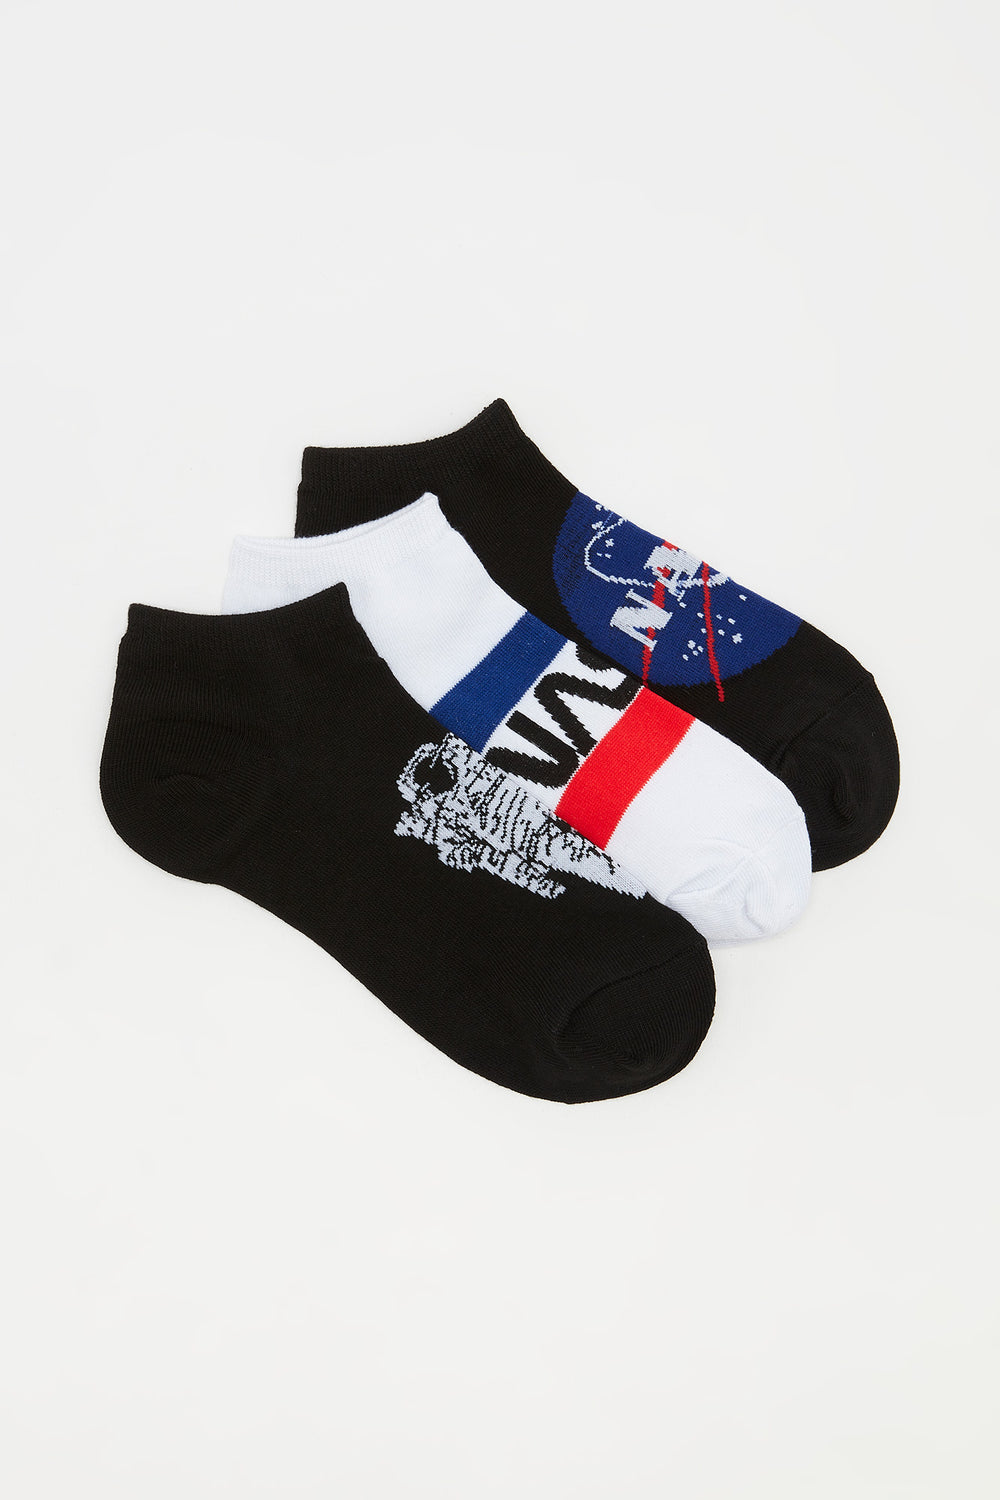 Graphic NASA Ankle Socks (3 Pairs) Assorted